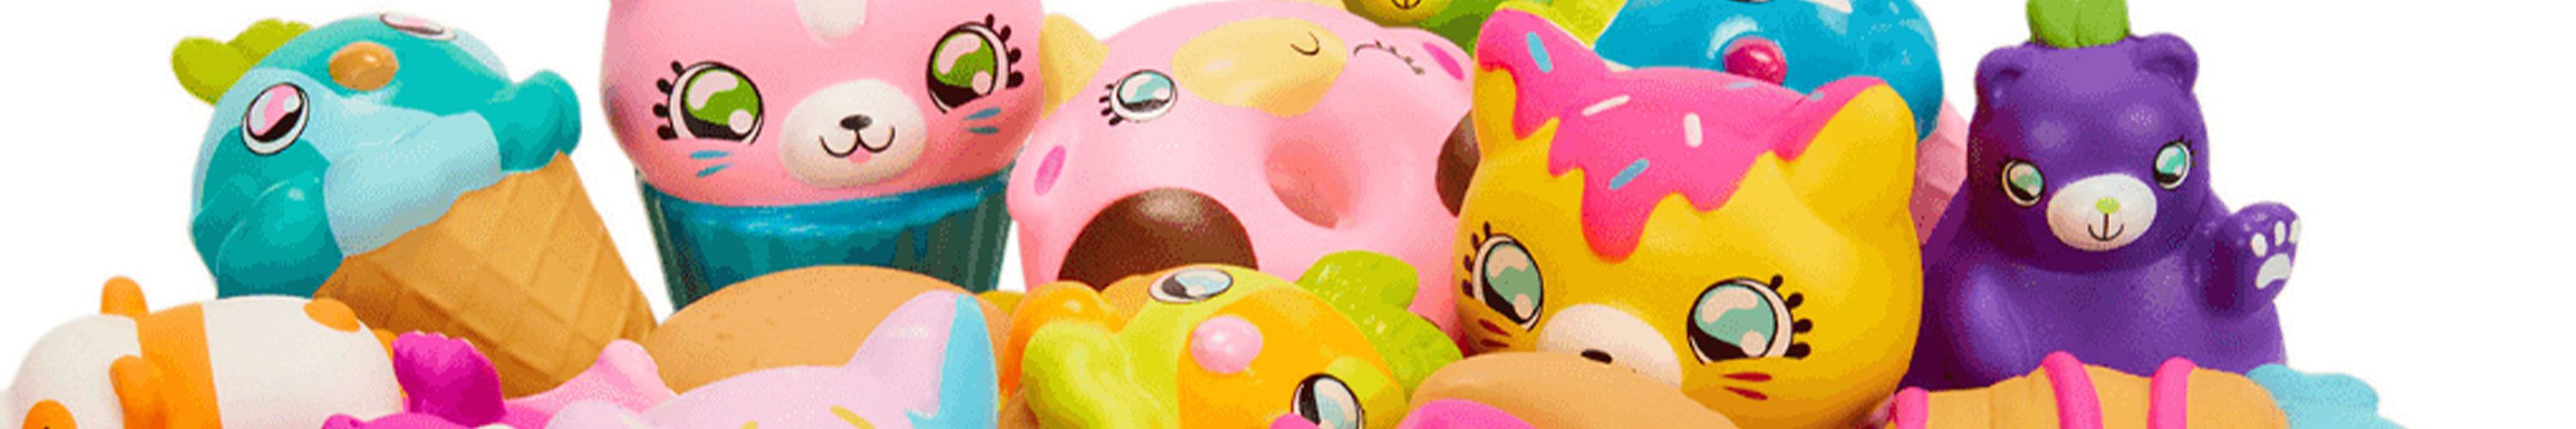 Squishies kawaii sur fond blanc - anti-stress.shop